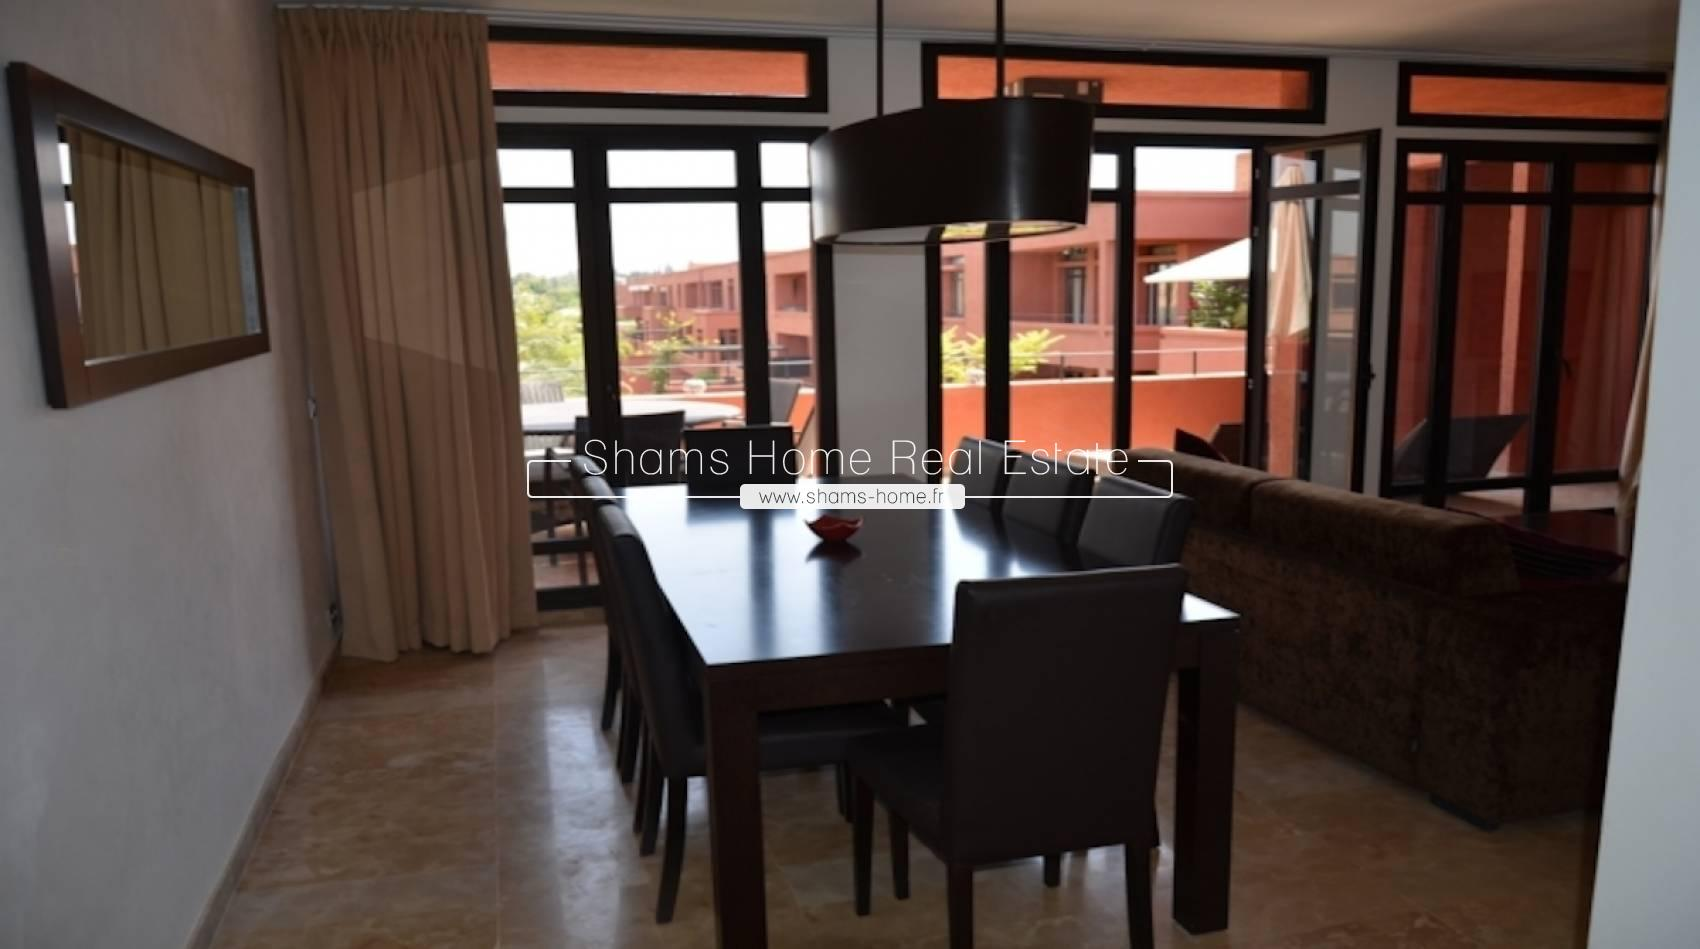 achat appartement de luxe marrakech amelkis r f v a 1544 shams home